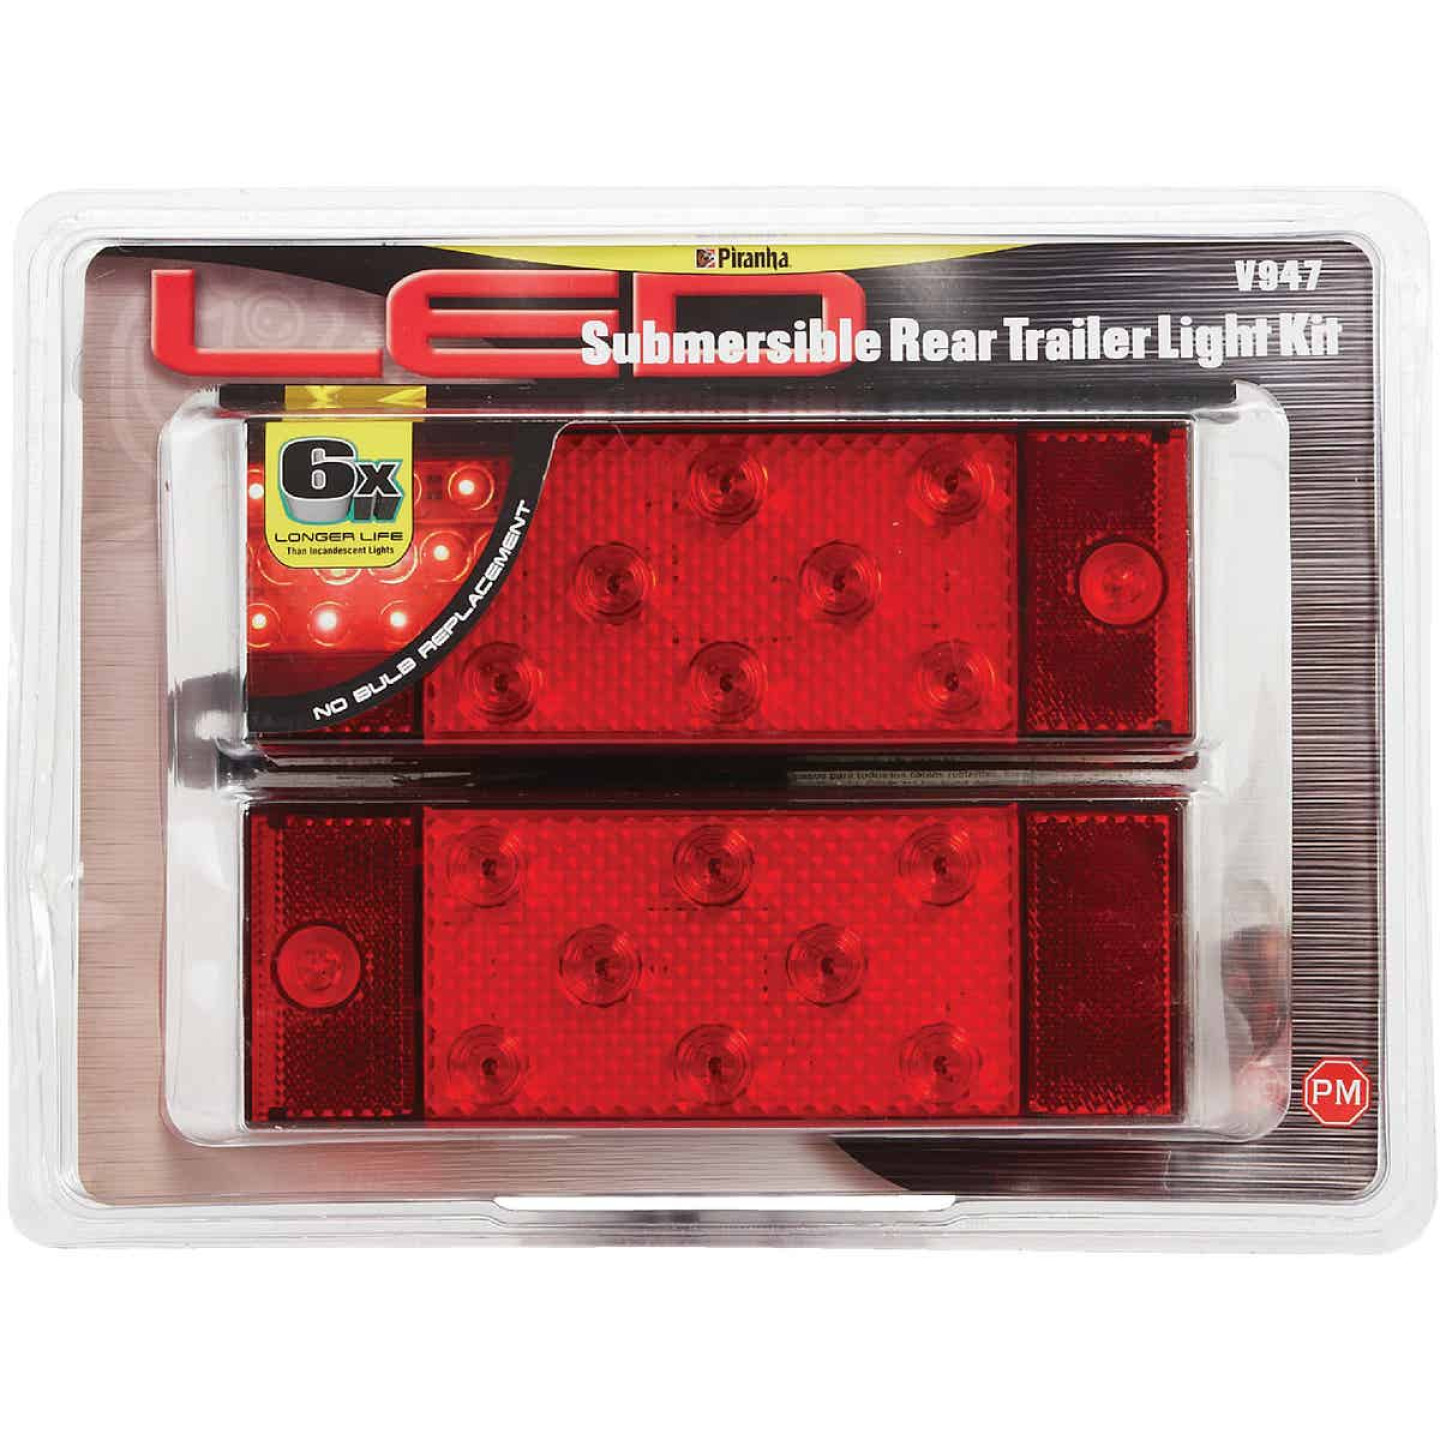 Peterson 80 In. Wide and Over LED Trailer Light Kit Image 2